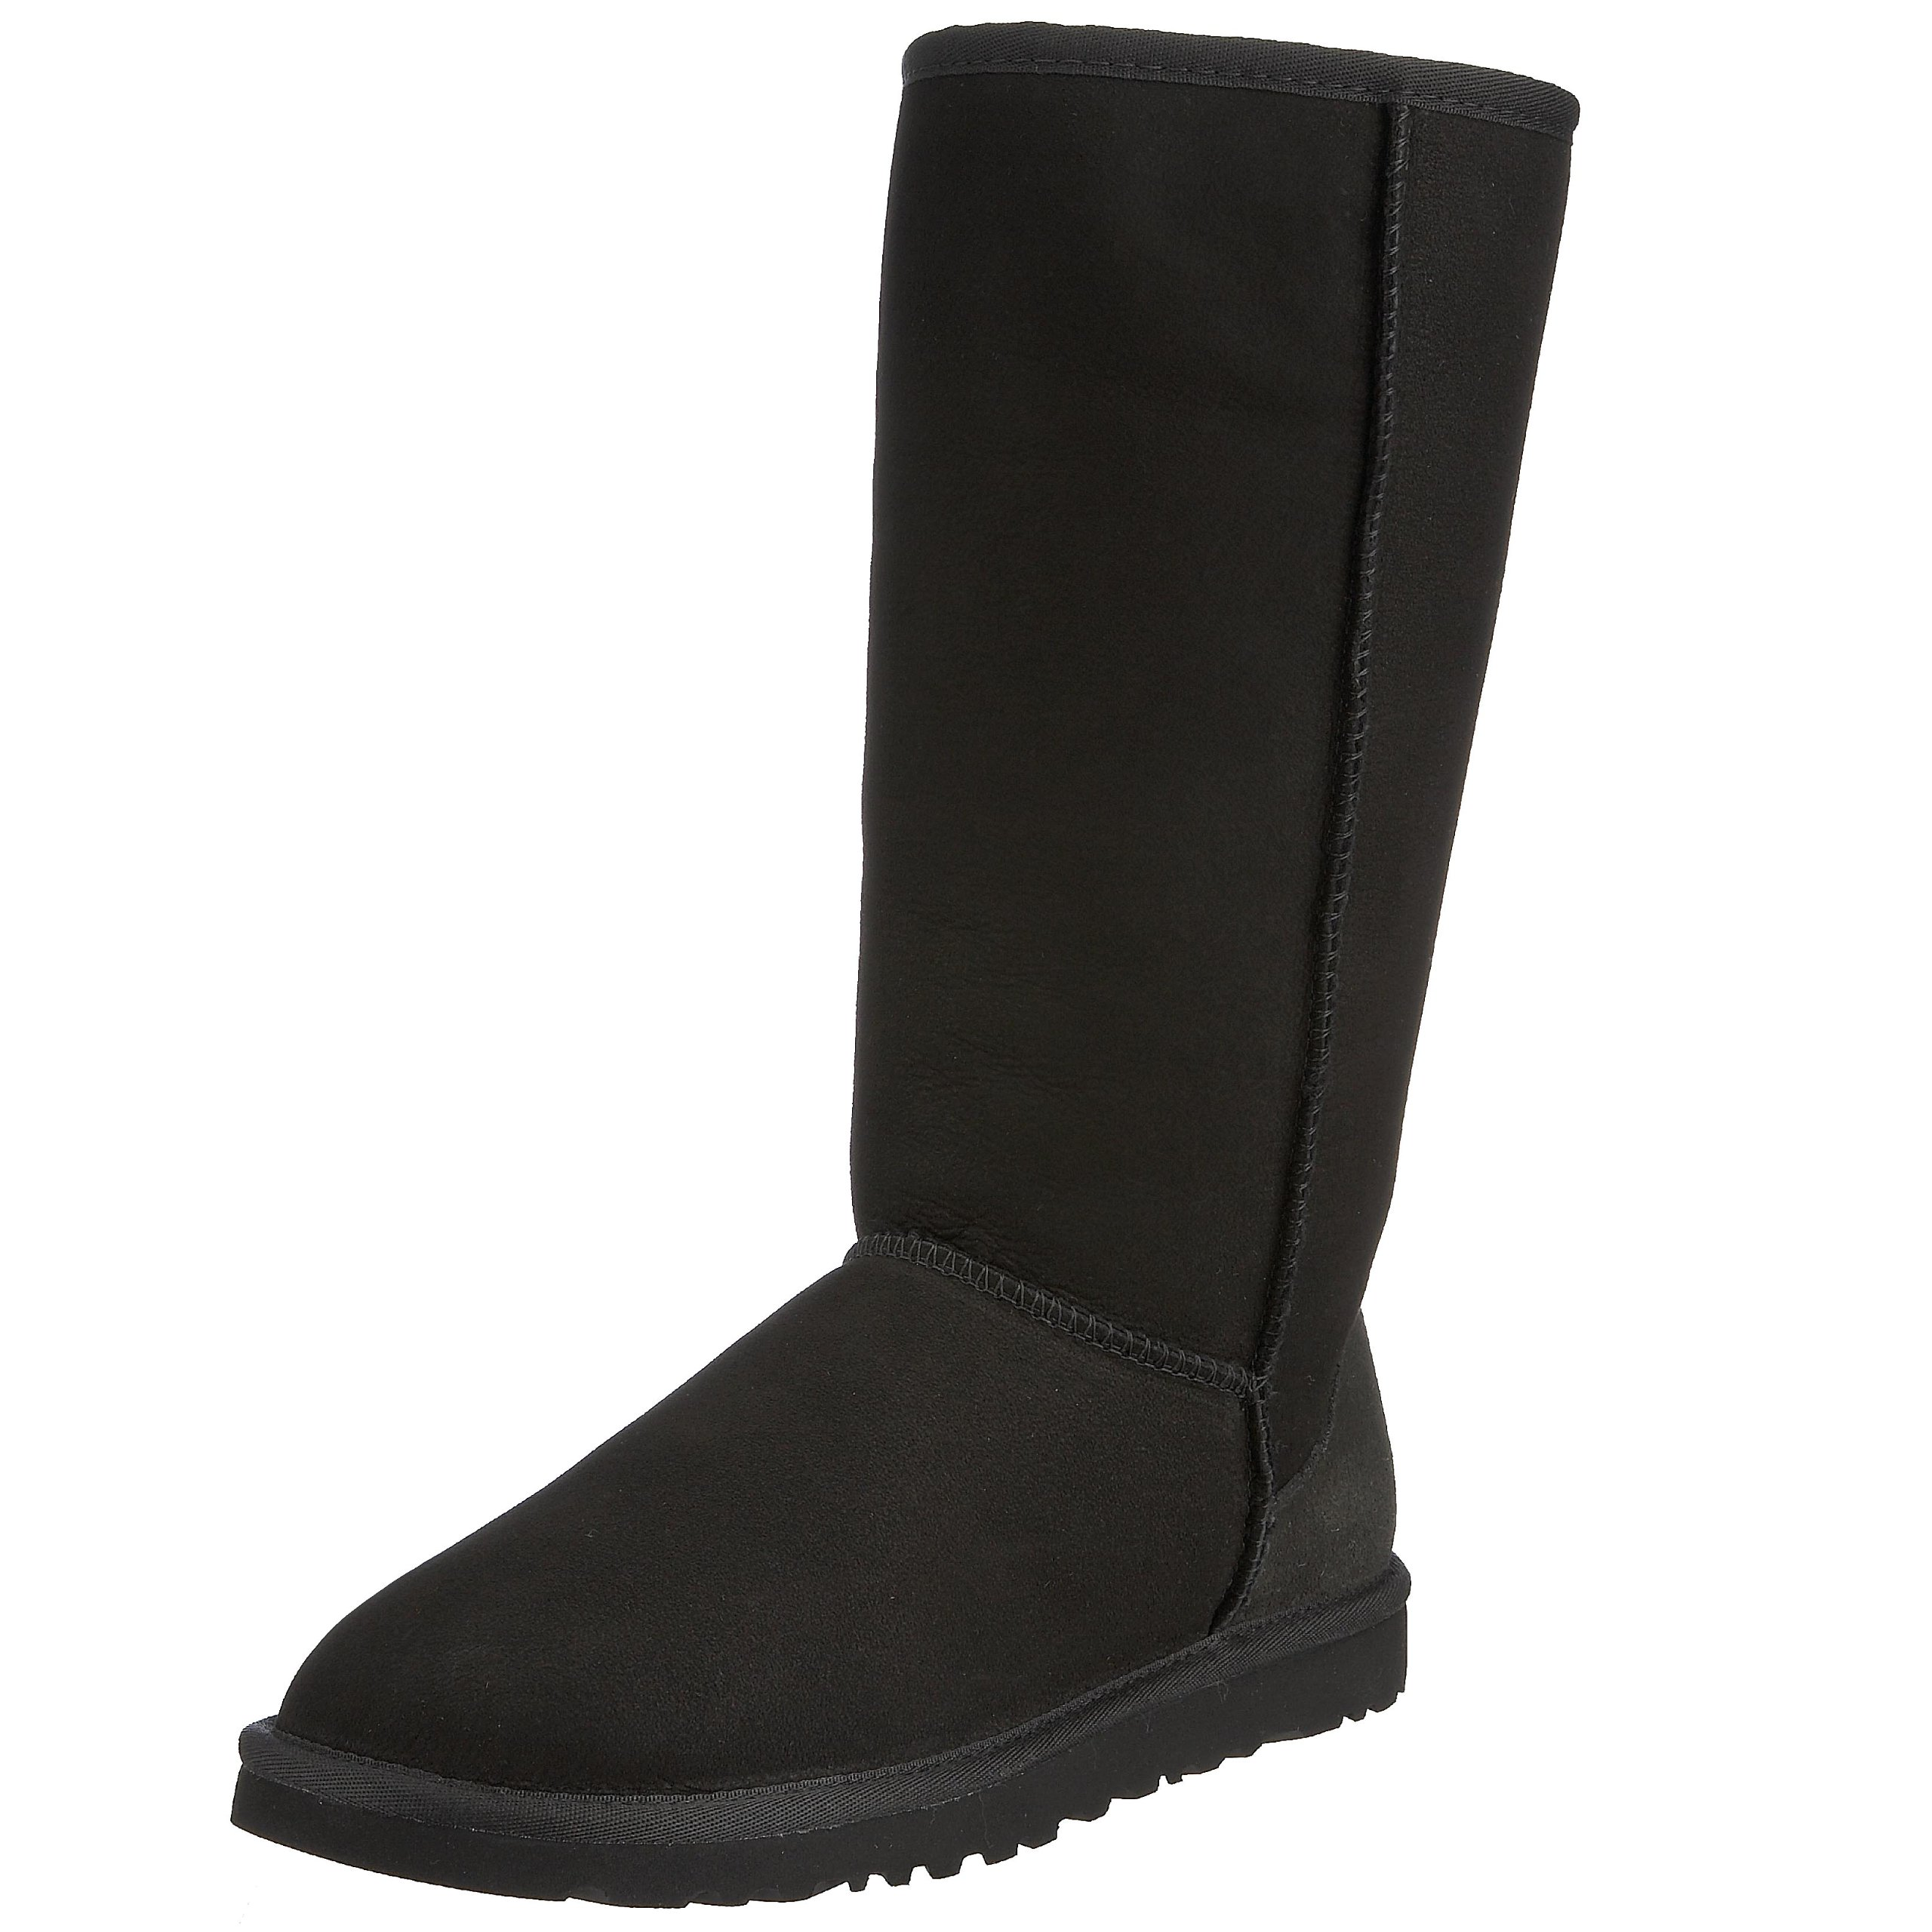 UGG Australia Womens Classic Tall Black Boot - 5